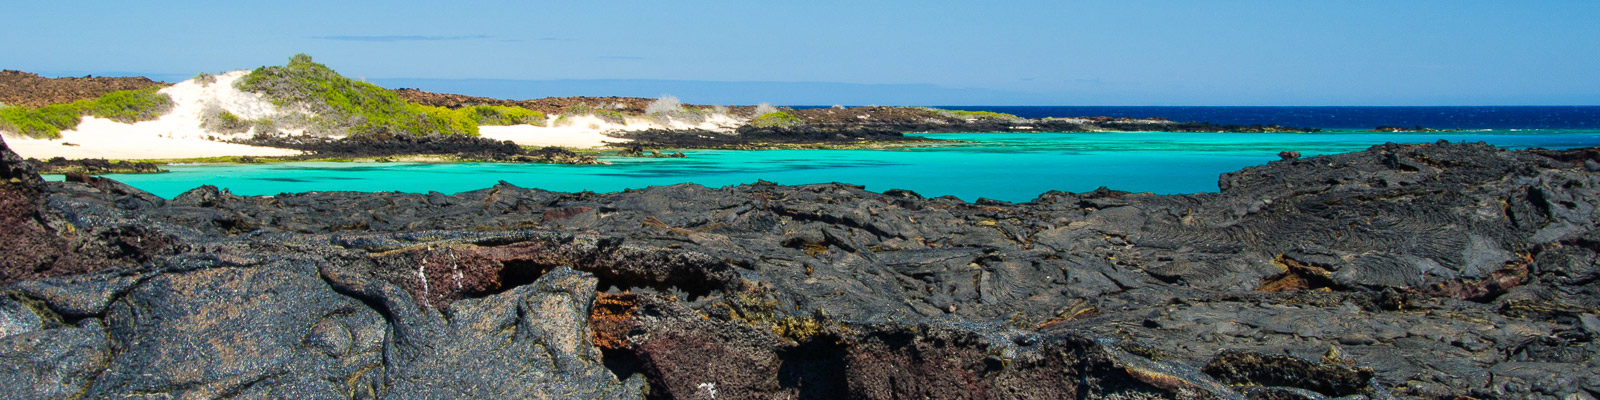 Ecuador The Andes And Land Based Galapagos Luxury Travel Tour